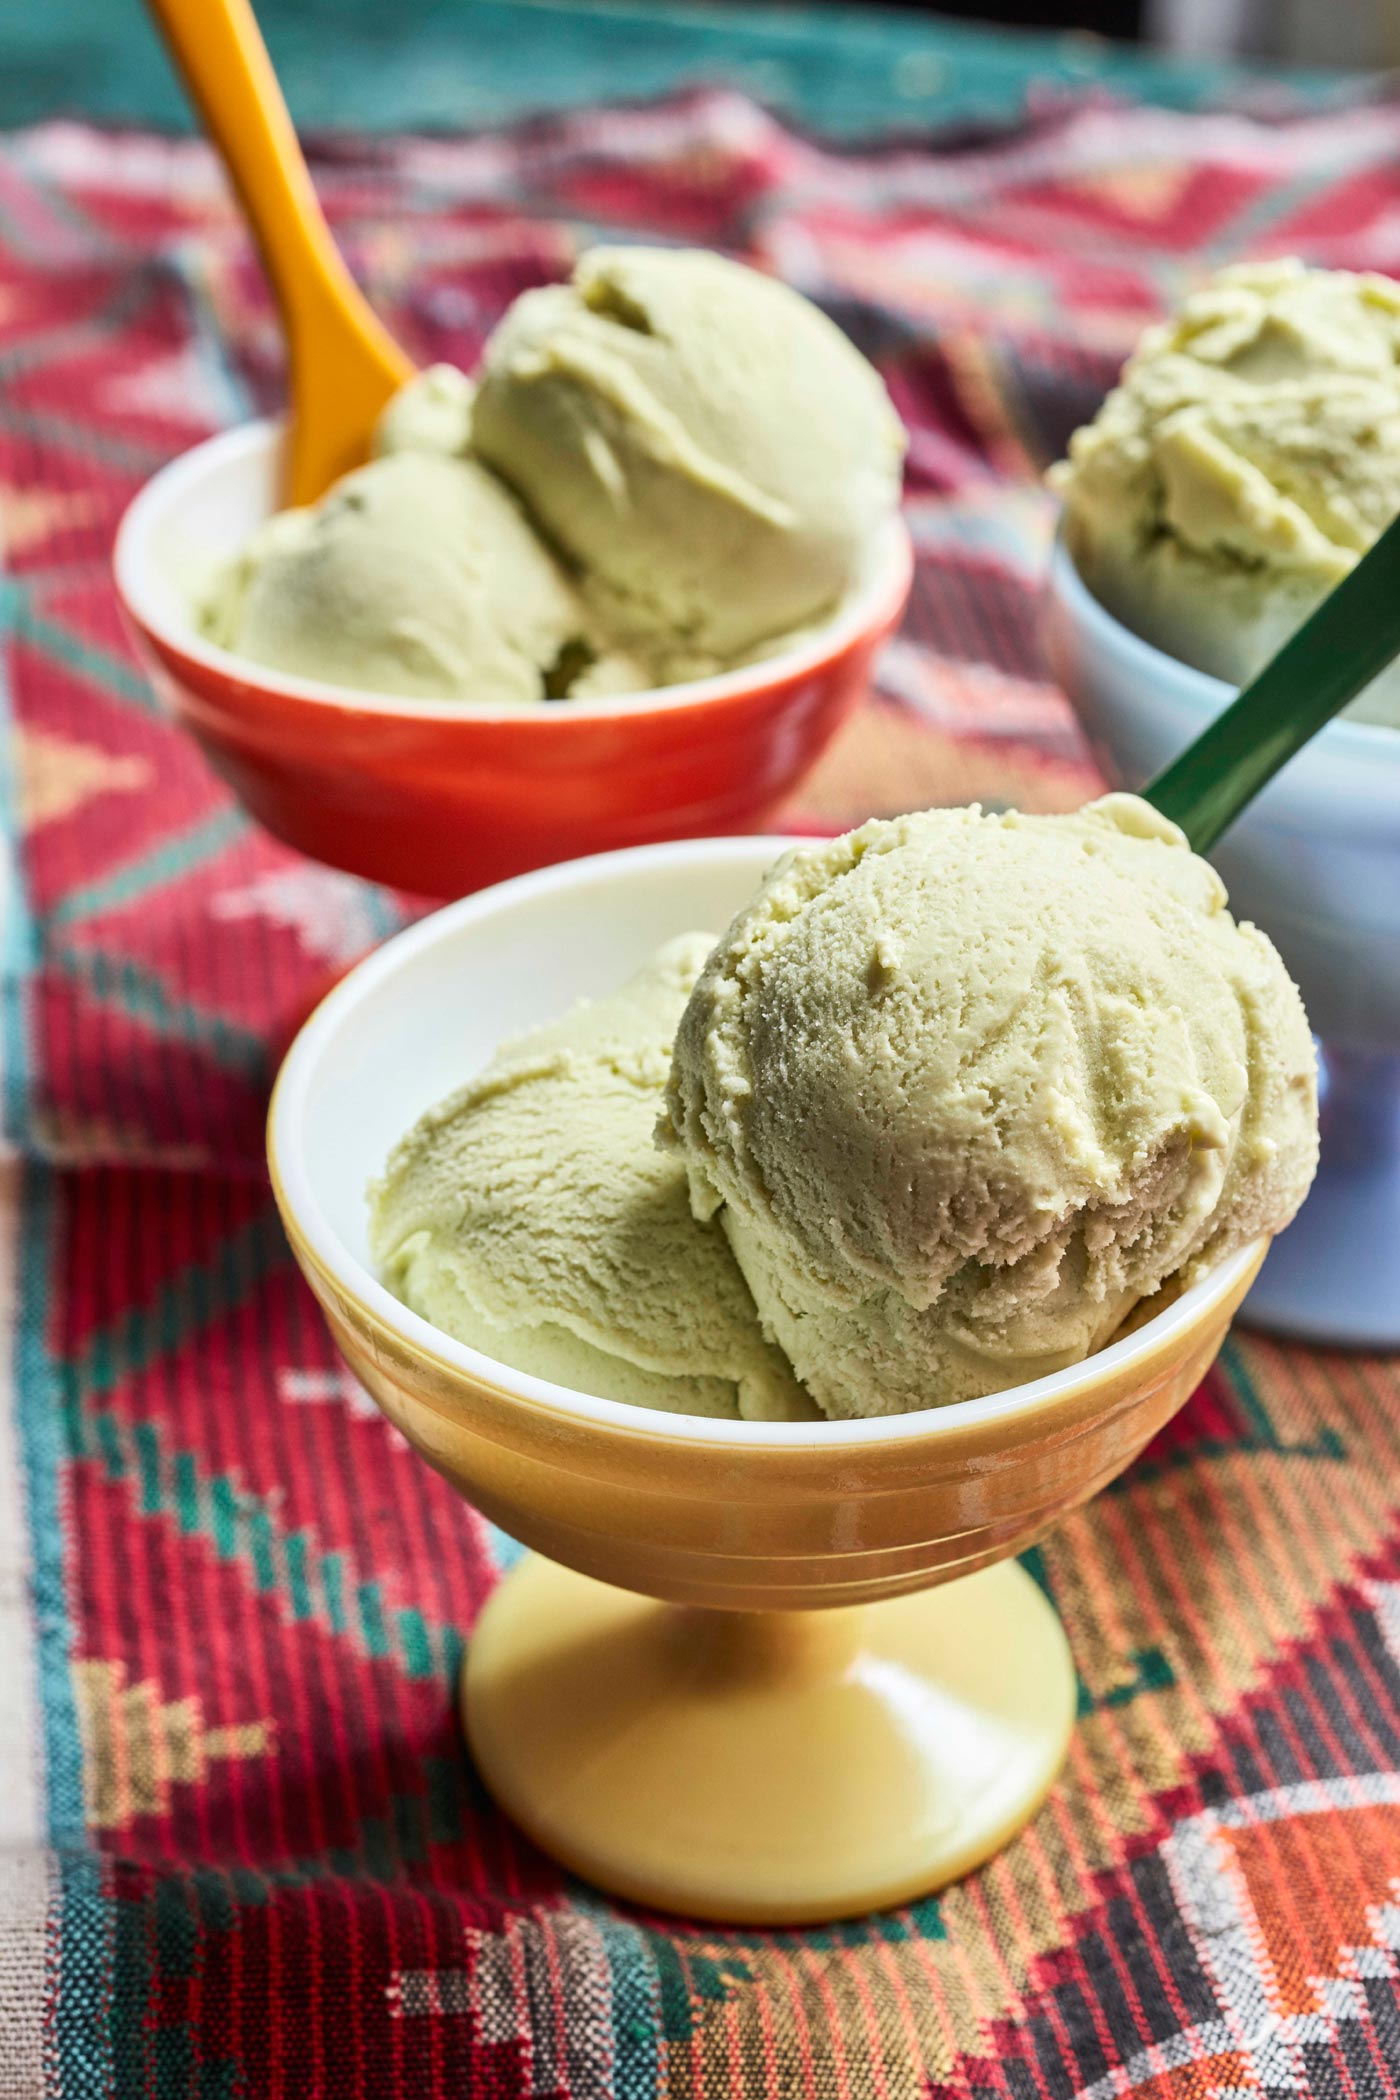 Avocado-ice-cream_I-AM-A-FILIPINO-(credit-Justin-Walker)